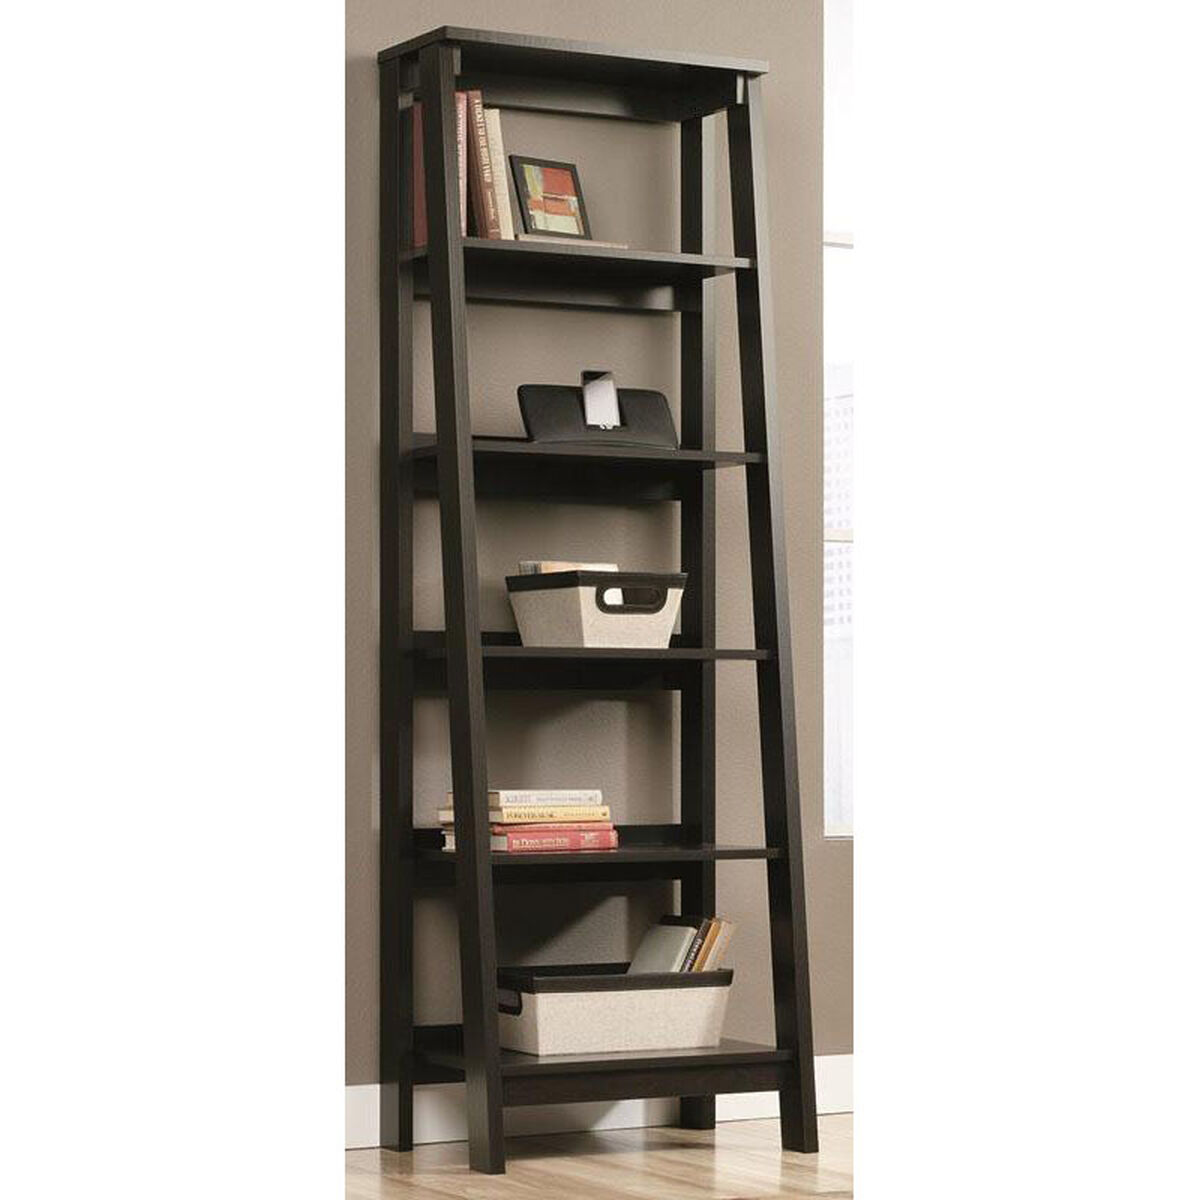 Our Select Collection 71125H Ladder Bookcase